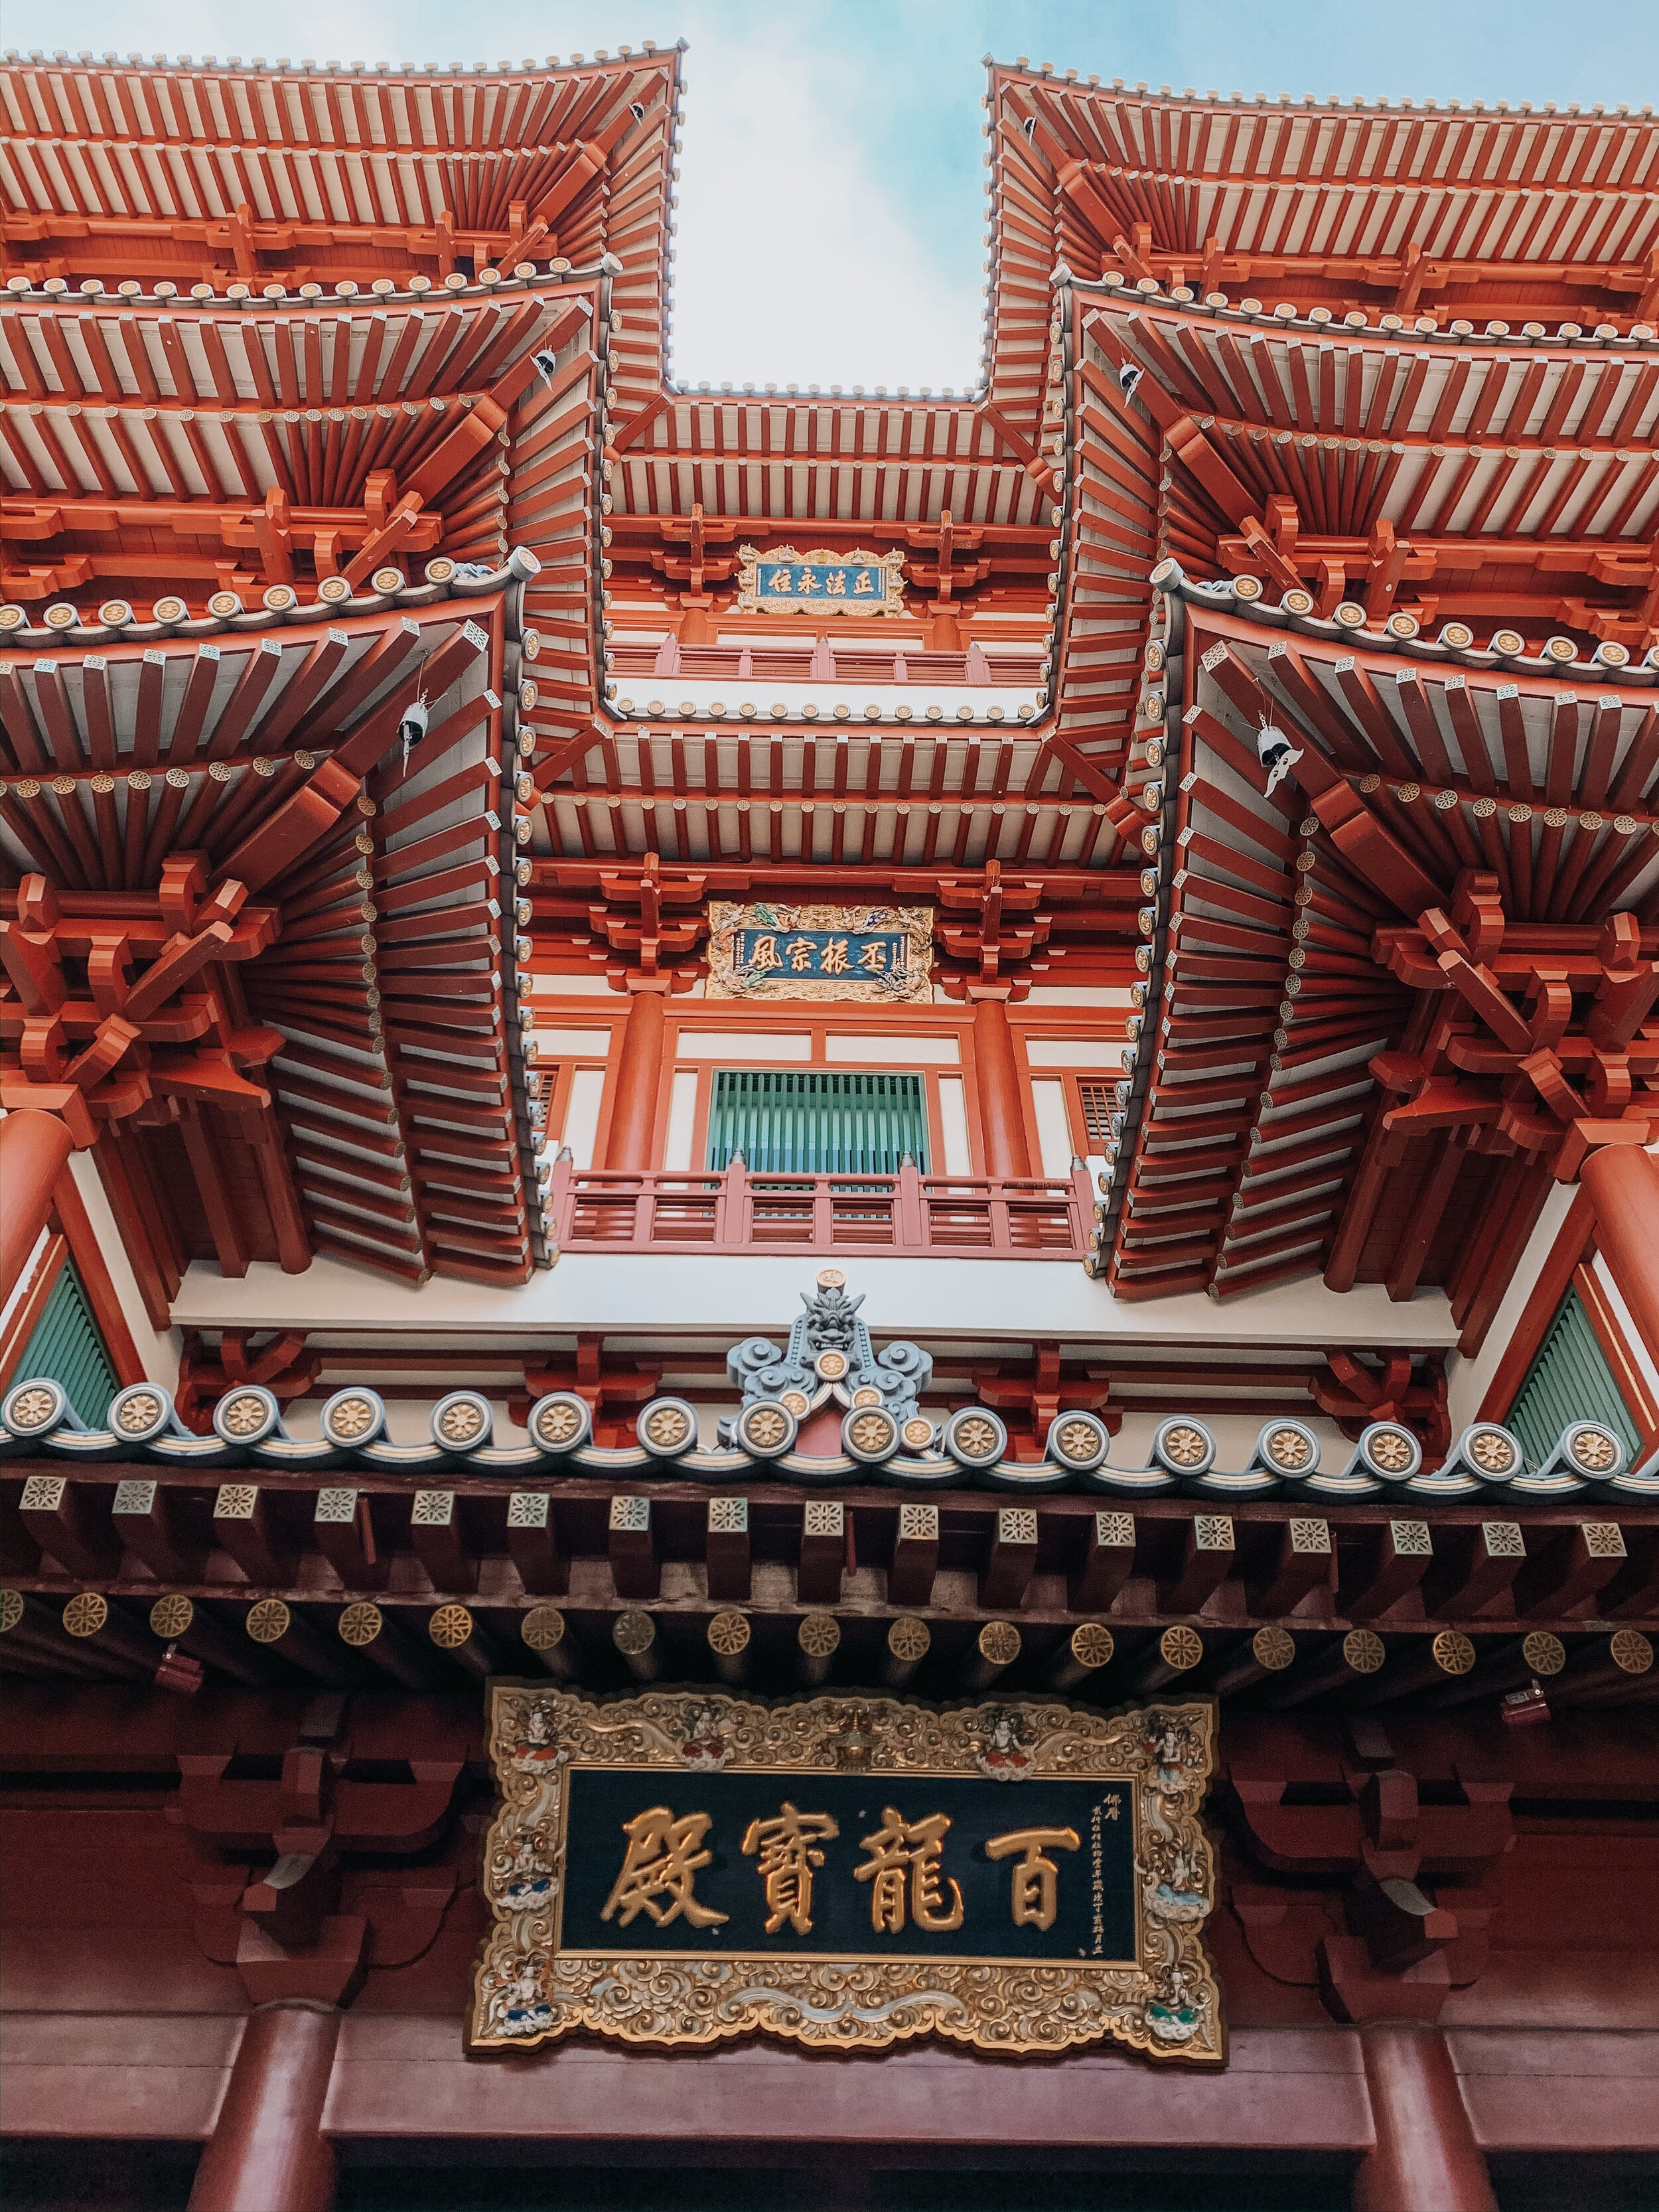 Buddha Tooth Relic Temple in Chinatown Singapore